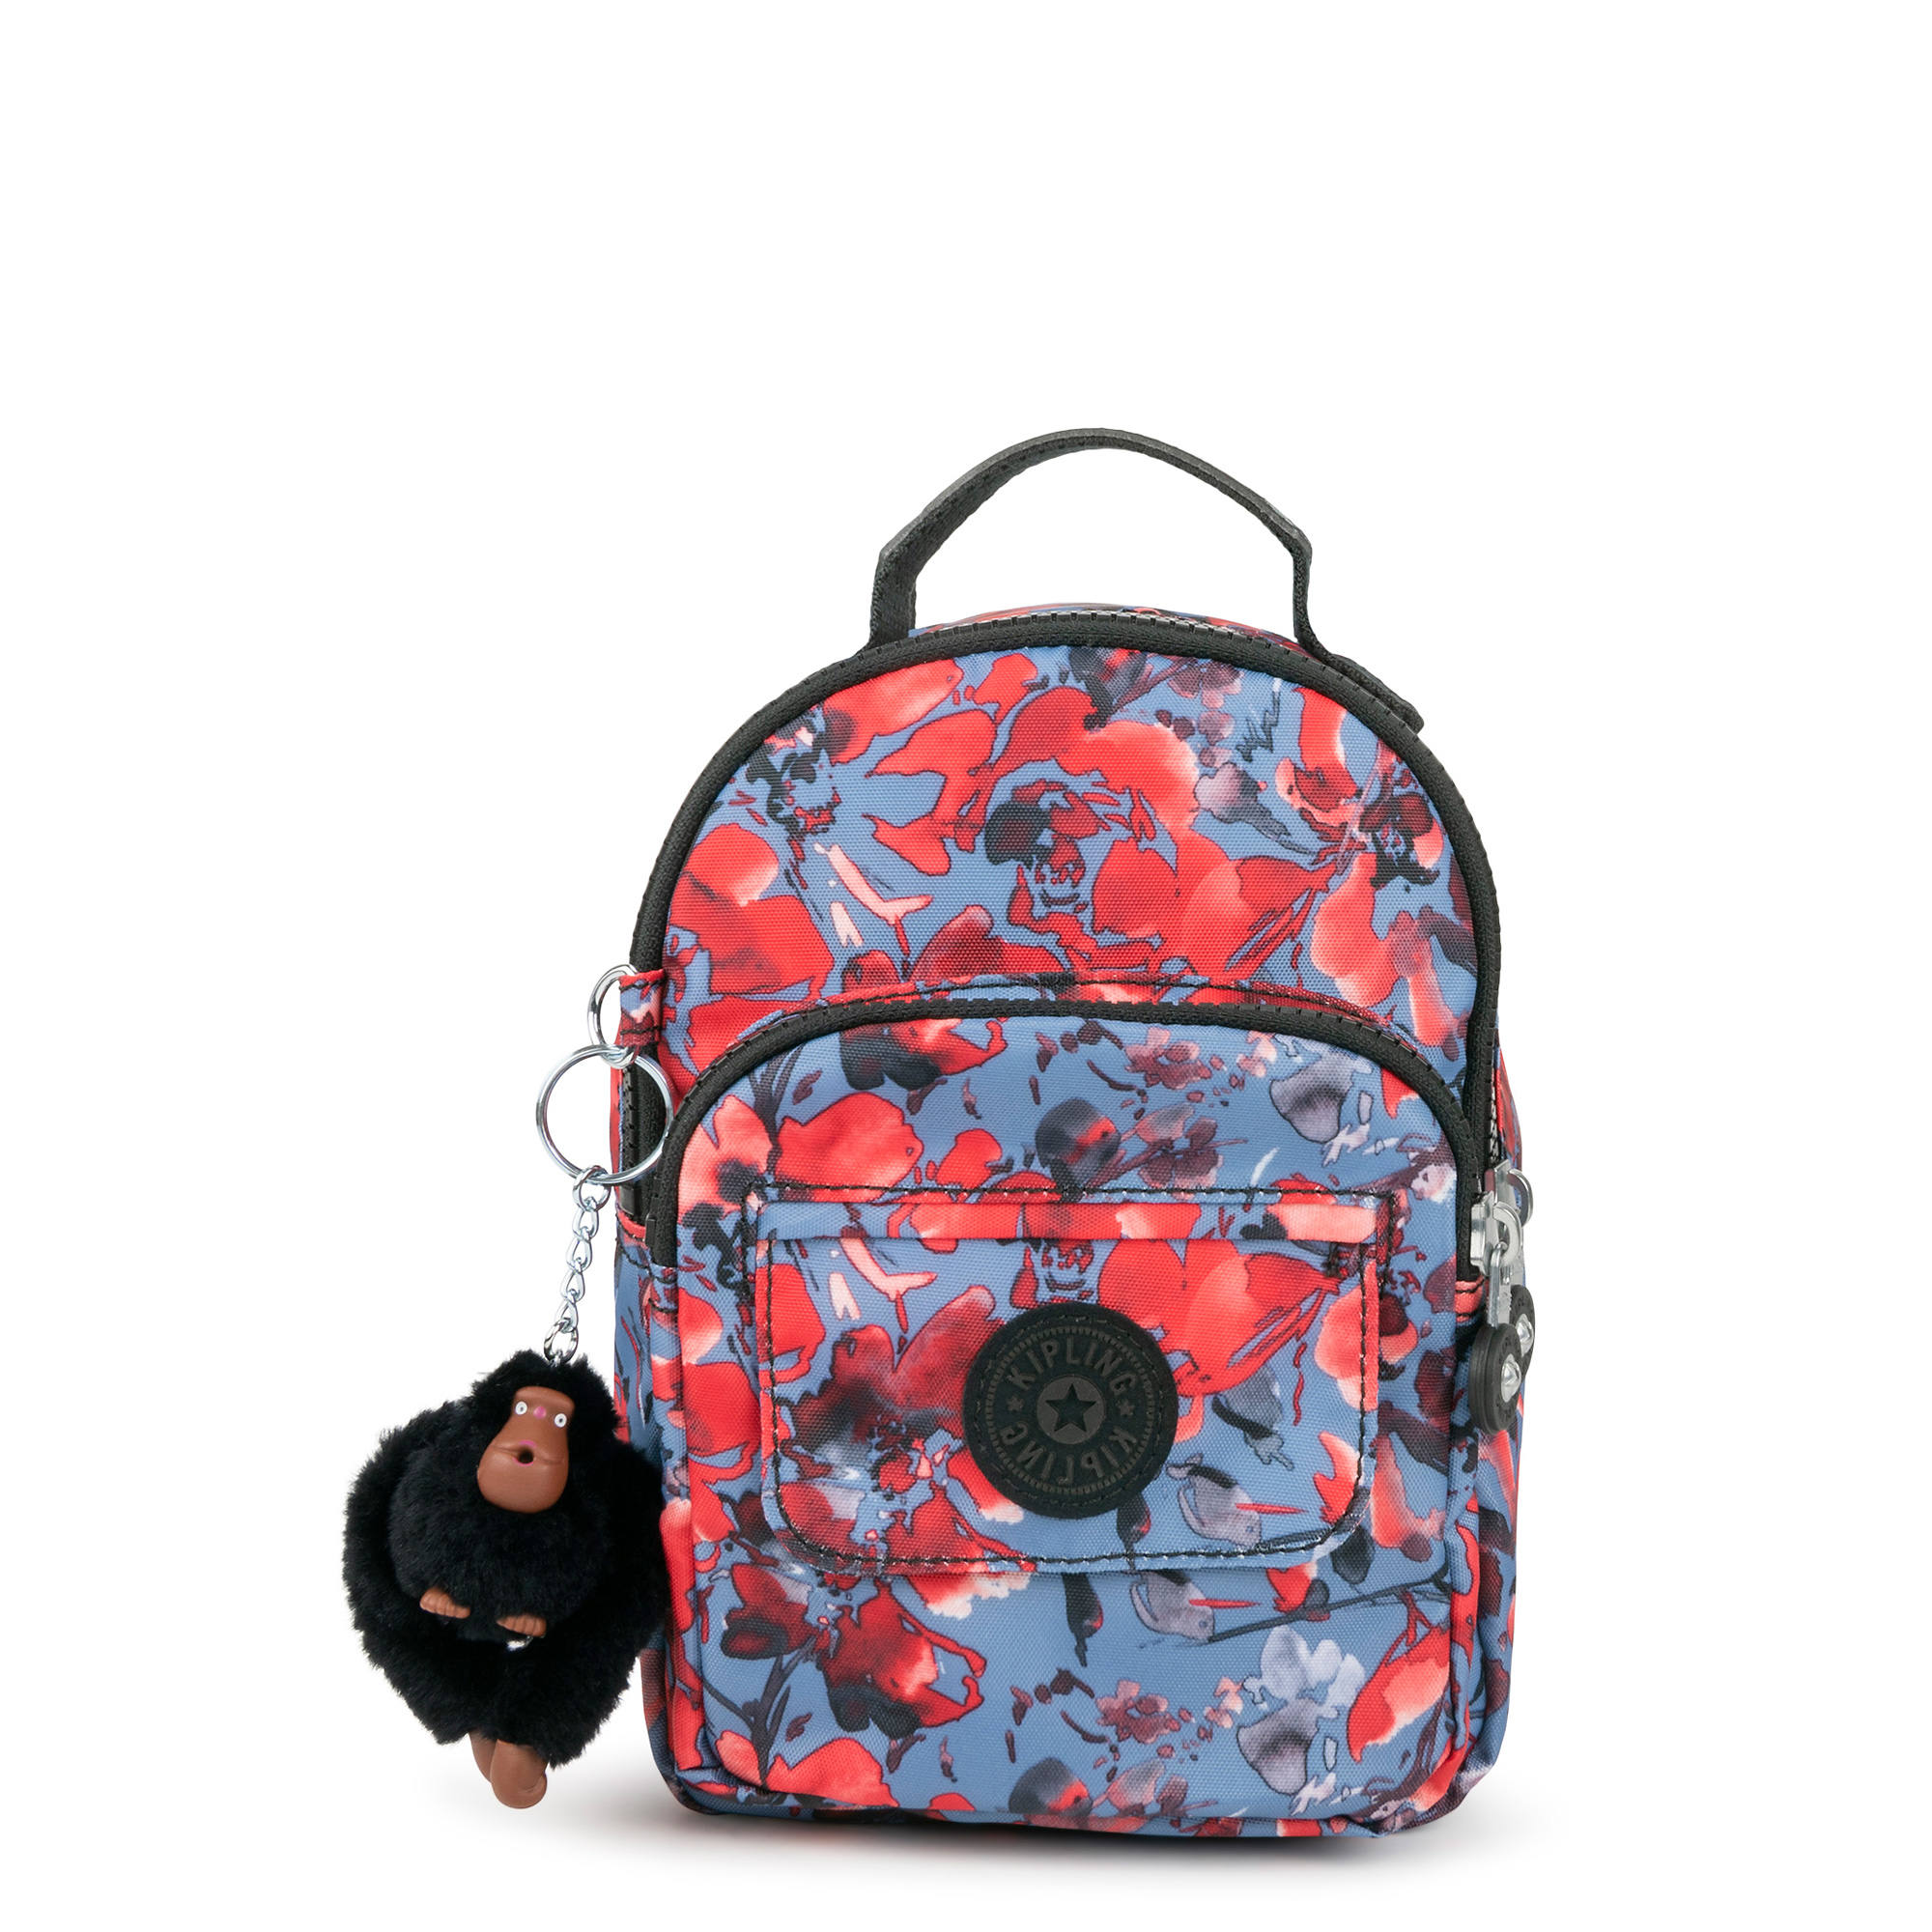 1d15c44ee0 Alber 3-in-1 Printed Convertible Mini Bag Backpack